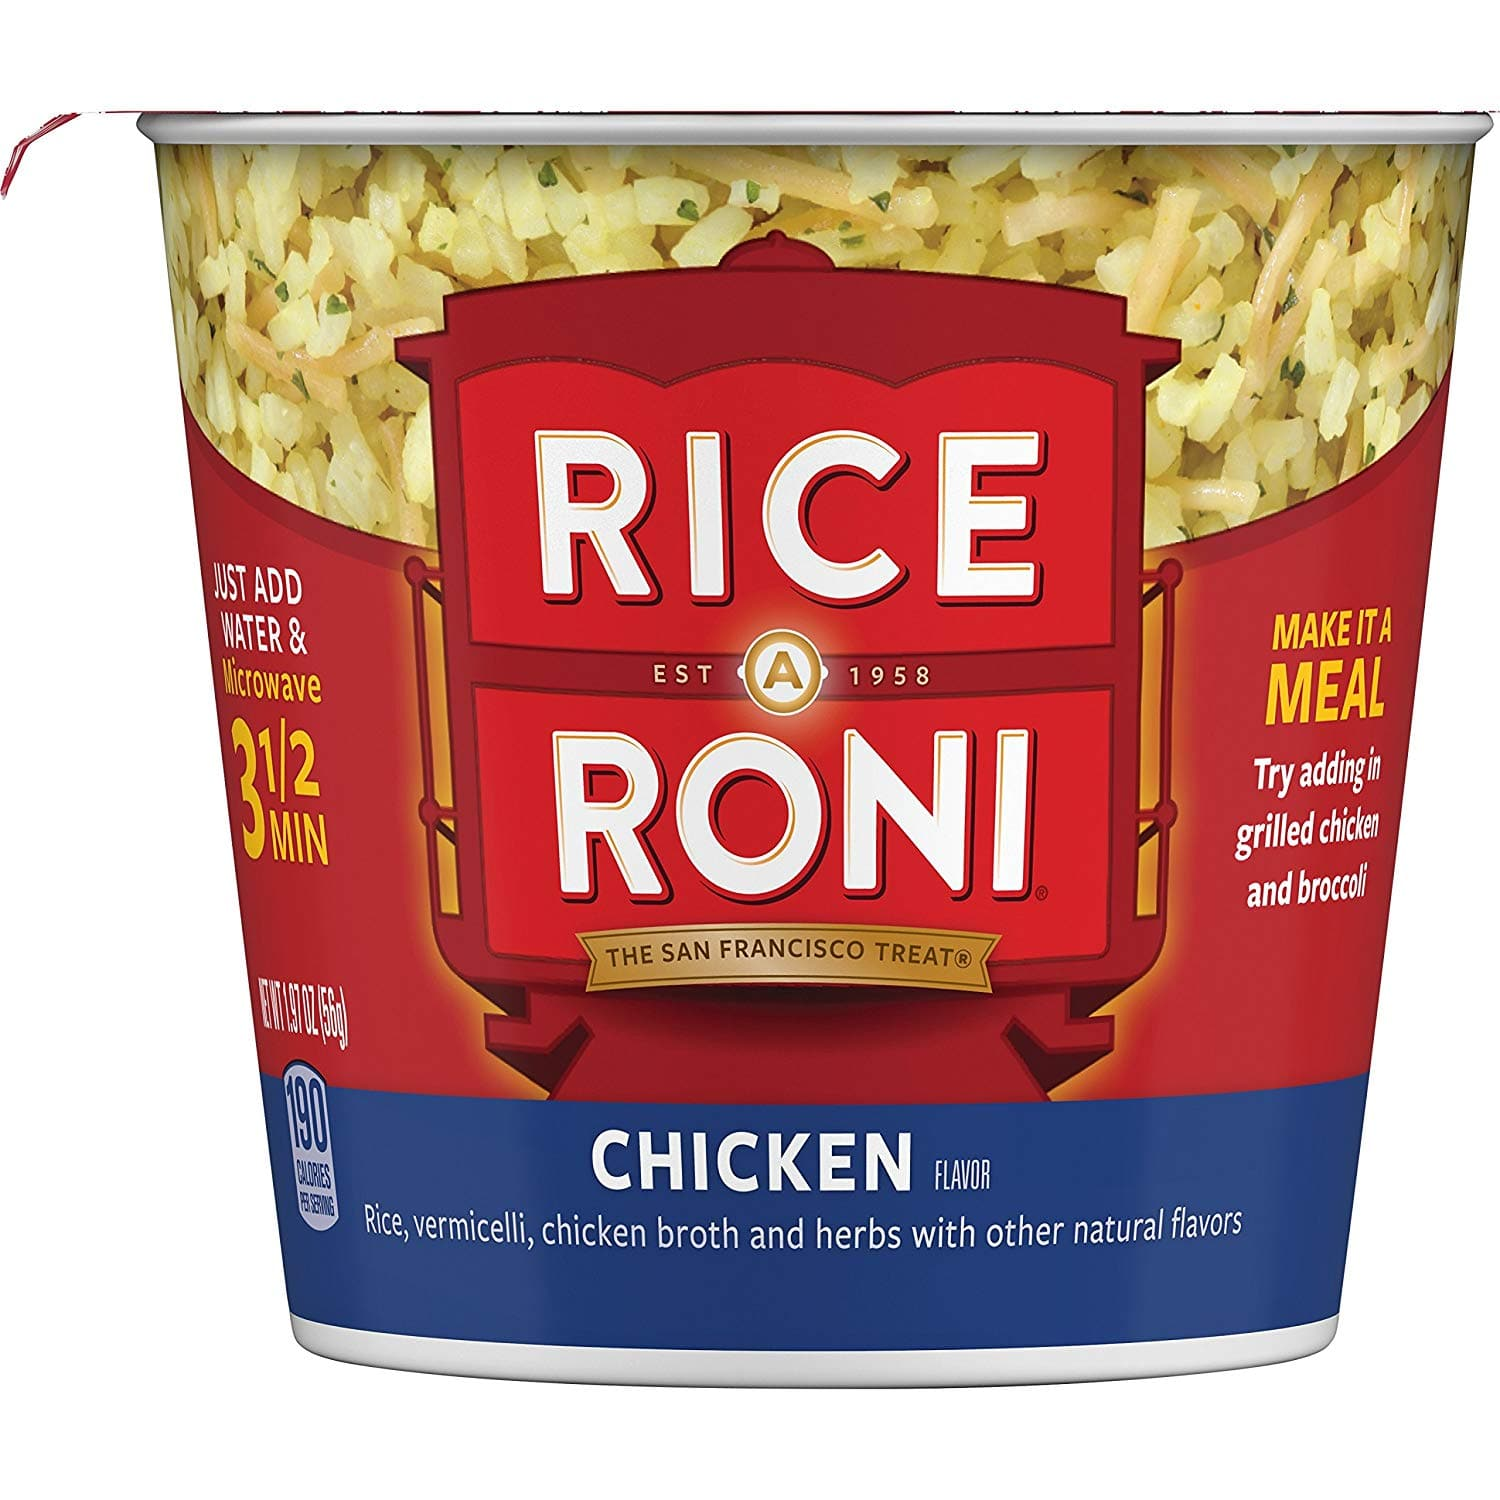 12-Pack of 2oz. Rice a Roni Cups: Chicken $9.03 5% or $7.90 15% AC w/s&s + Free S/H